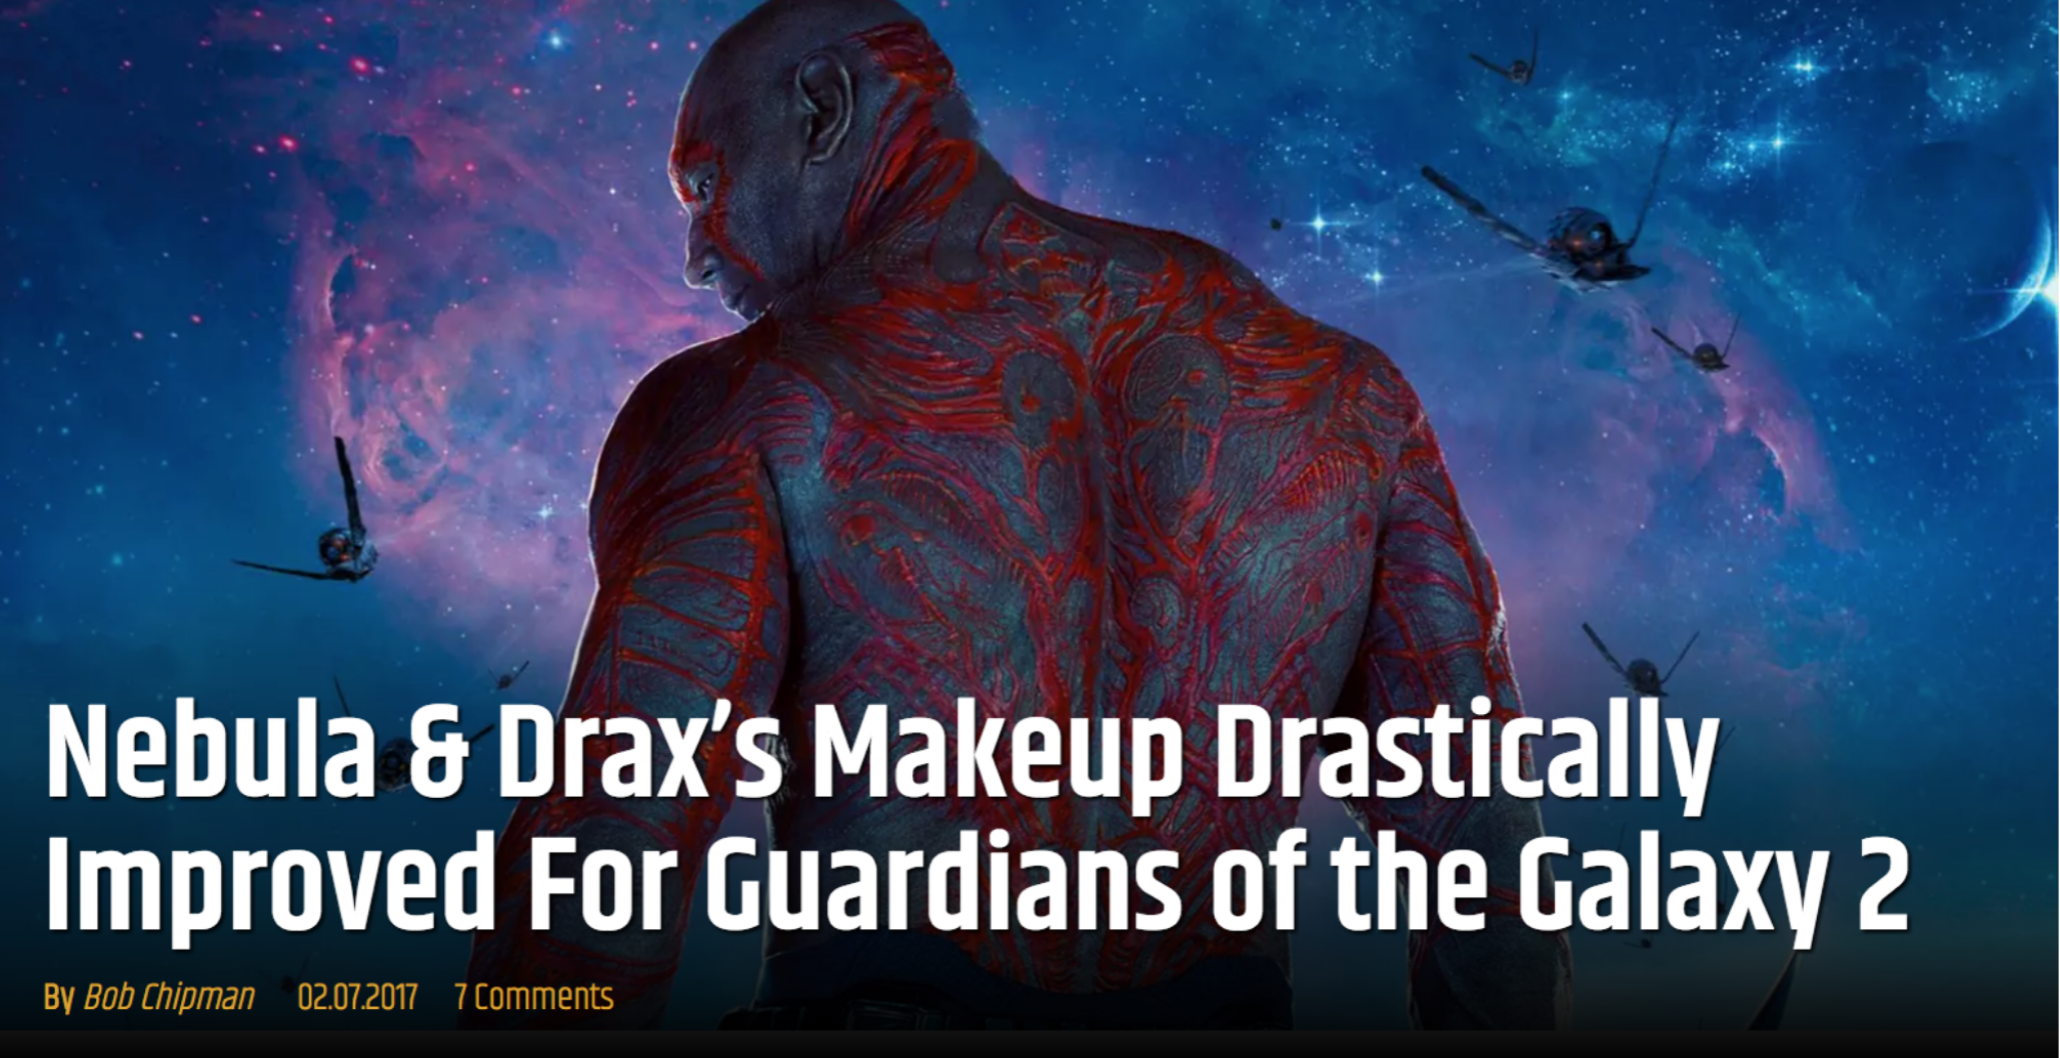 http://screenrant.com/nebula-drax-makeup-guardians-of-the-galaxy-2/